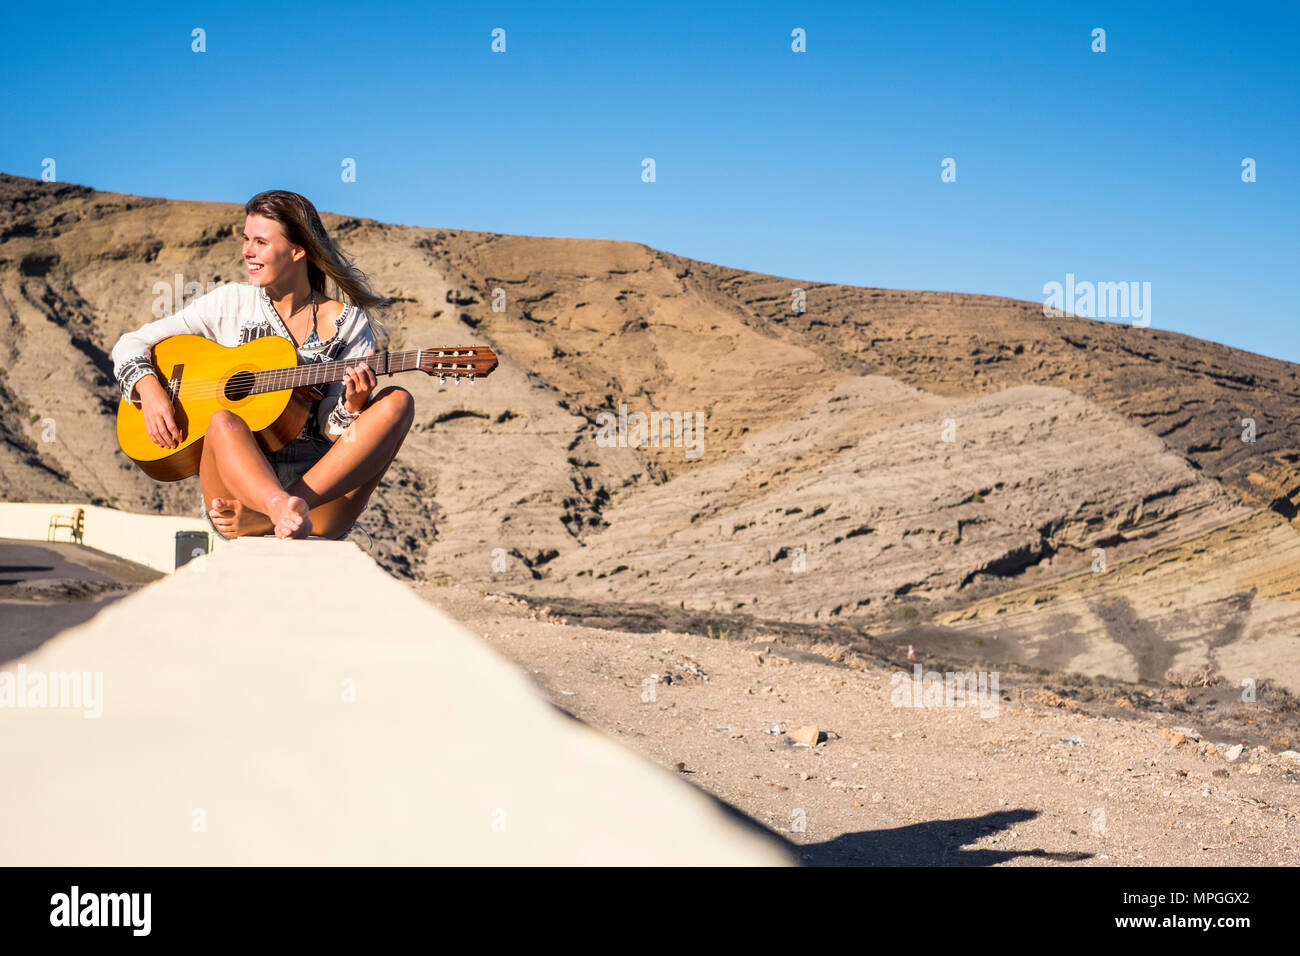 nippy and alternative lifestyle concept for blonde caucasian model smiling outdoor with mountains on the background and playing an old acoustic guitar - Stock Image